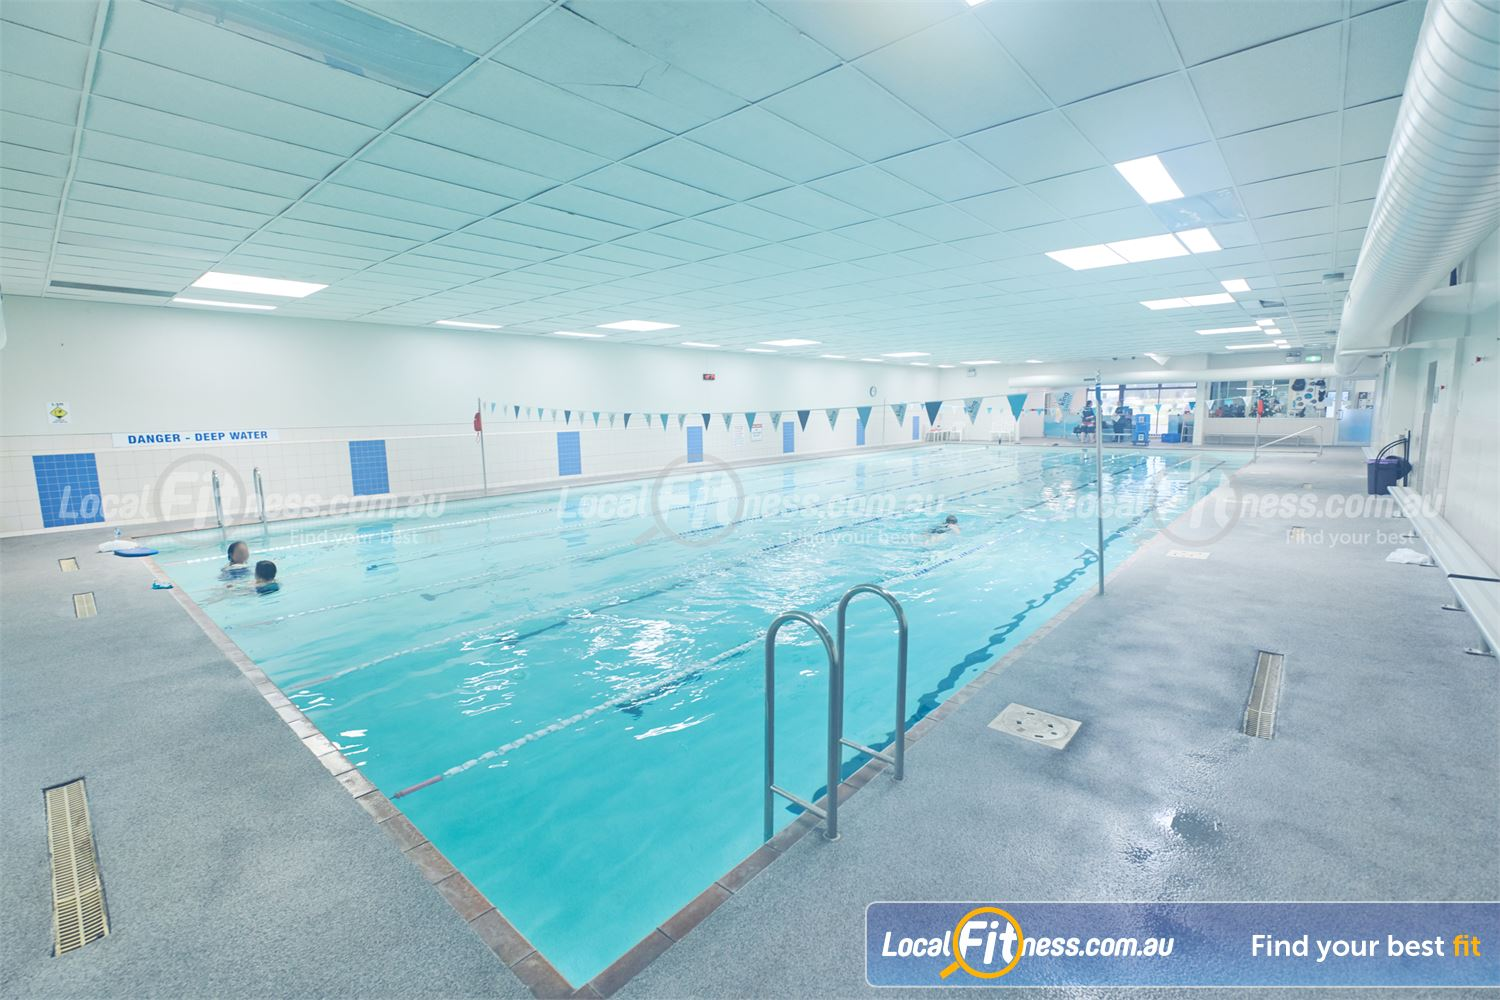 Goodlife Health Clubs Near Springvale South Join our aqua classes or enrol your kids in the Dingley swim school.